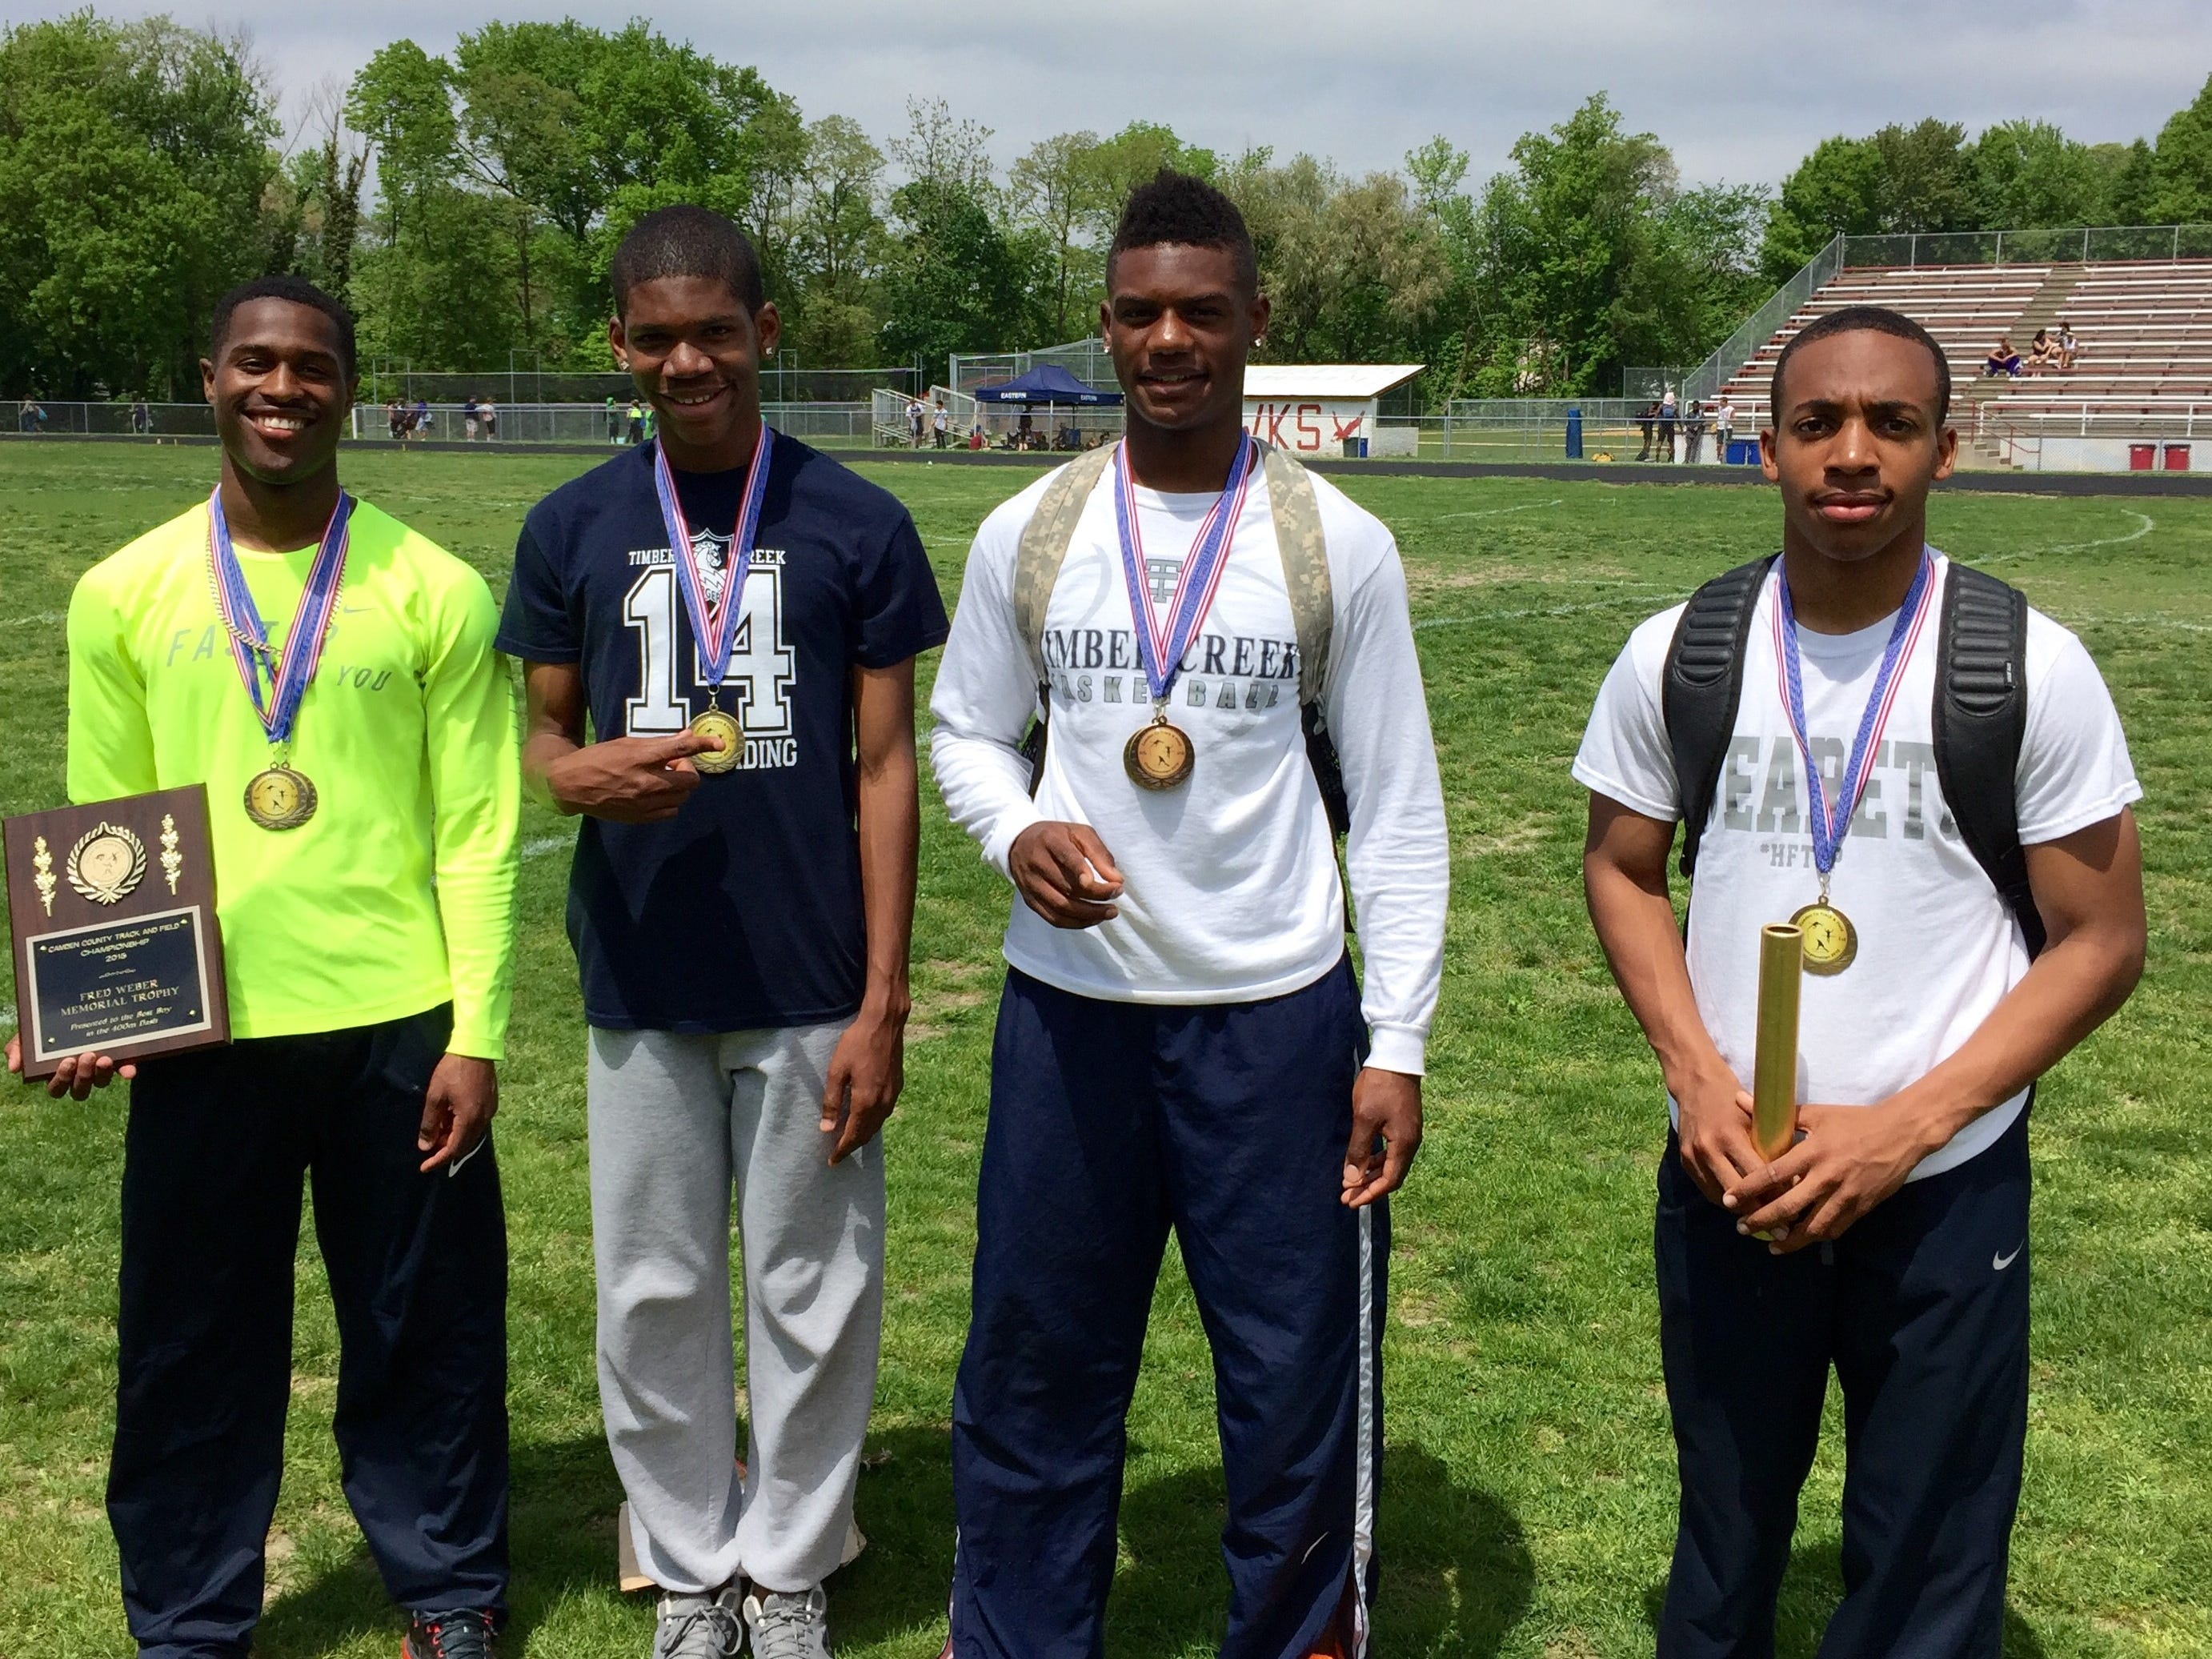 Timber Creek's 4x400 relay team (L to R) Dante Witcher, Darius Carroway, Jerryl McCoy and Jason Butler captured a first-place finish at the Camden County Championships on Saturday.